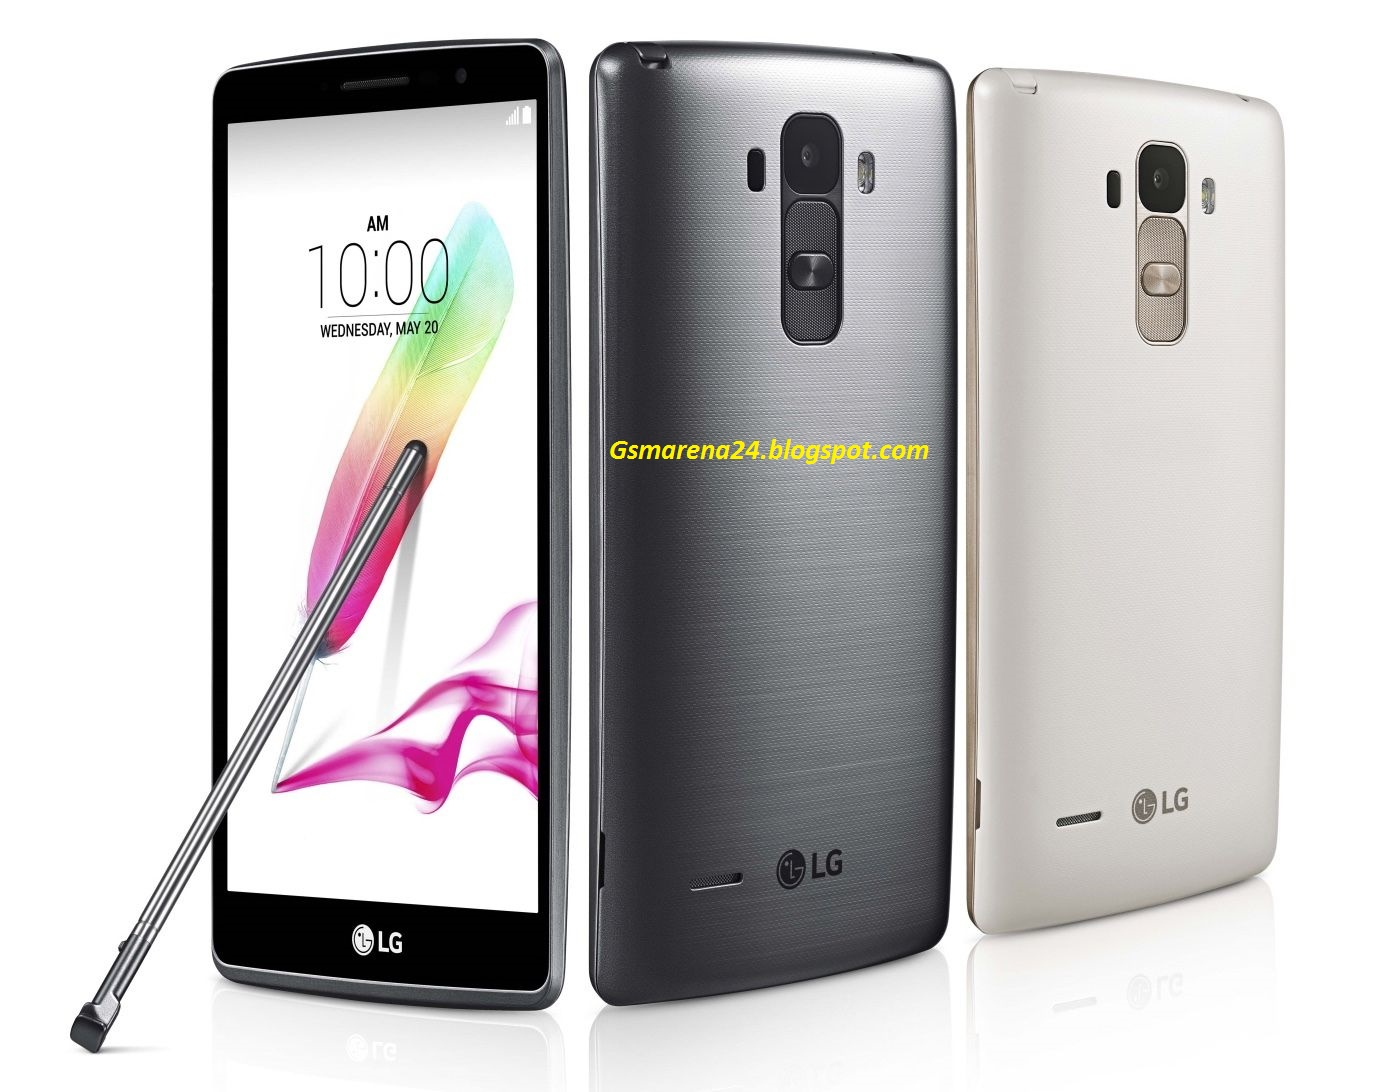 Safely Root LG G Stylo H634 on Android 5.1 lollipop - Gadgets and ...